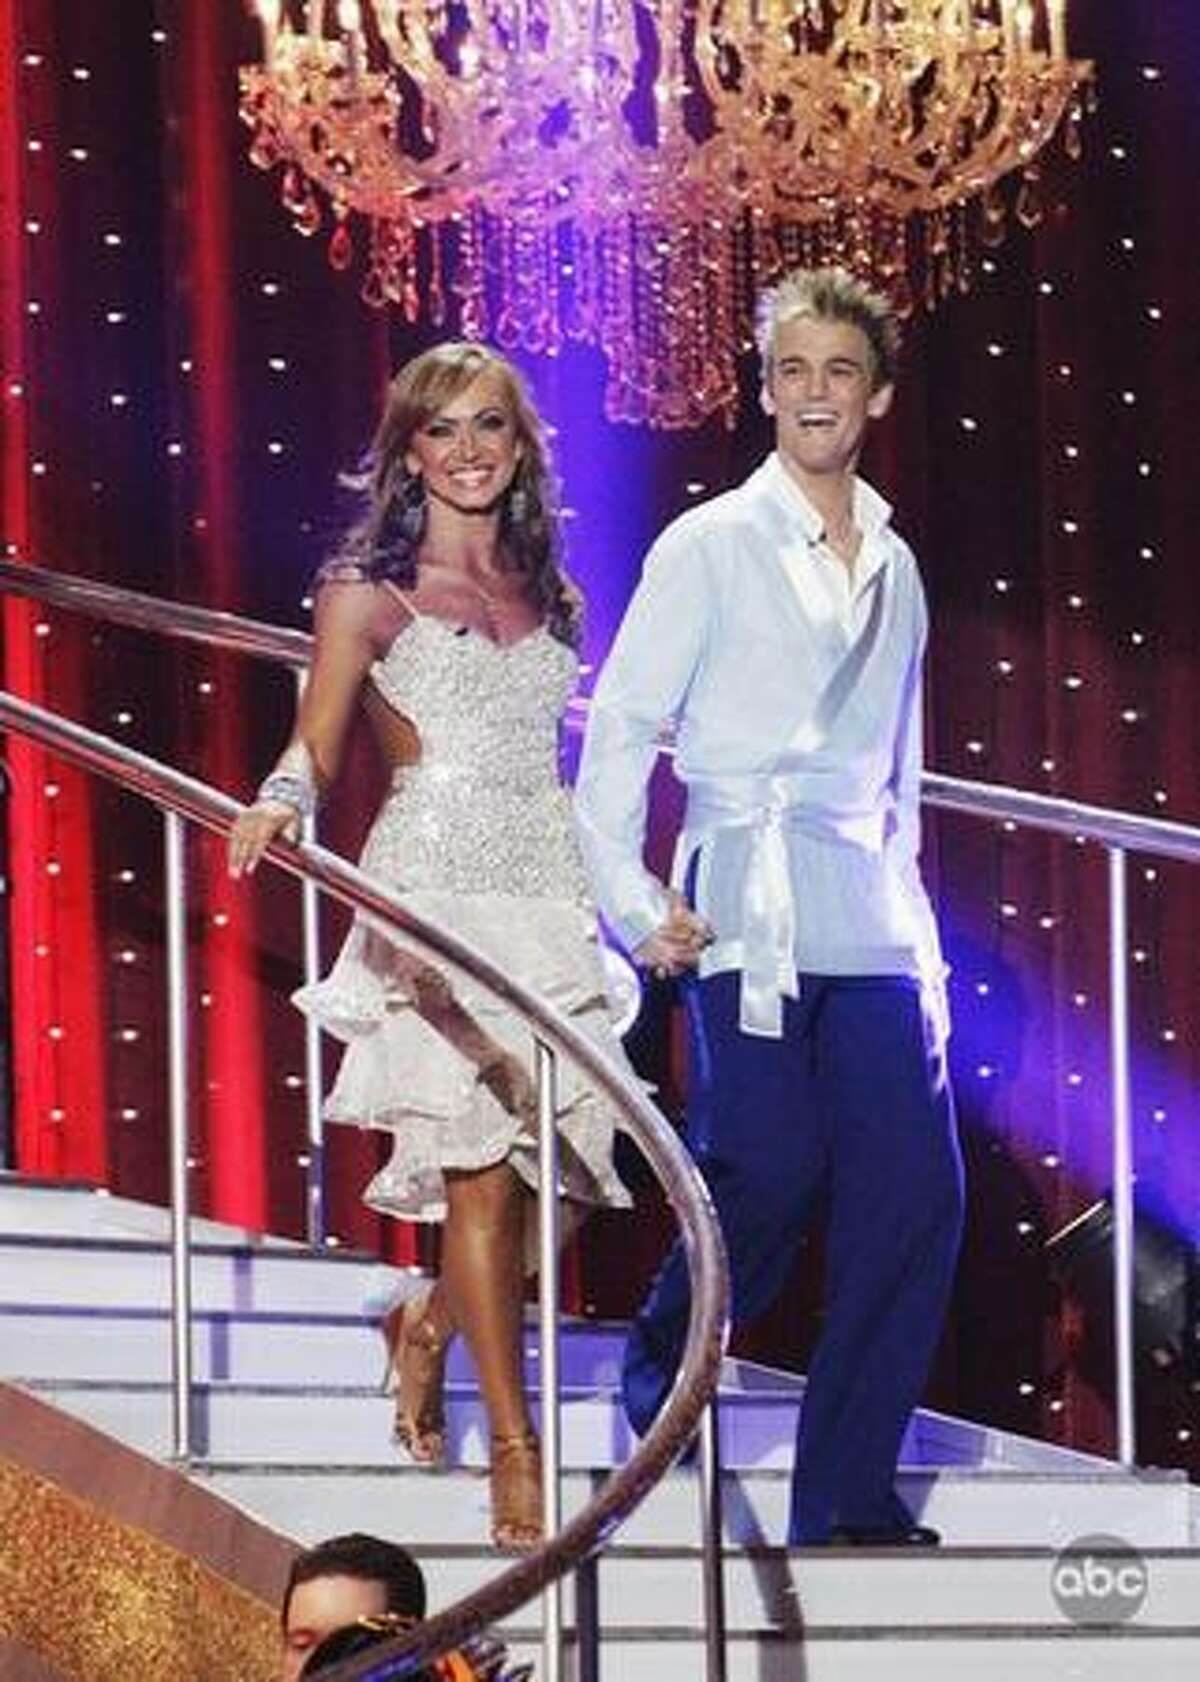 Karina Smirnoff and singer Aaron Carter enter the stage on Monday night's episode of